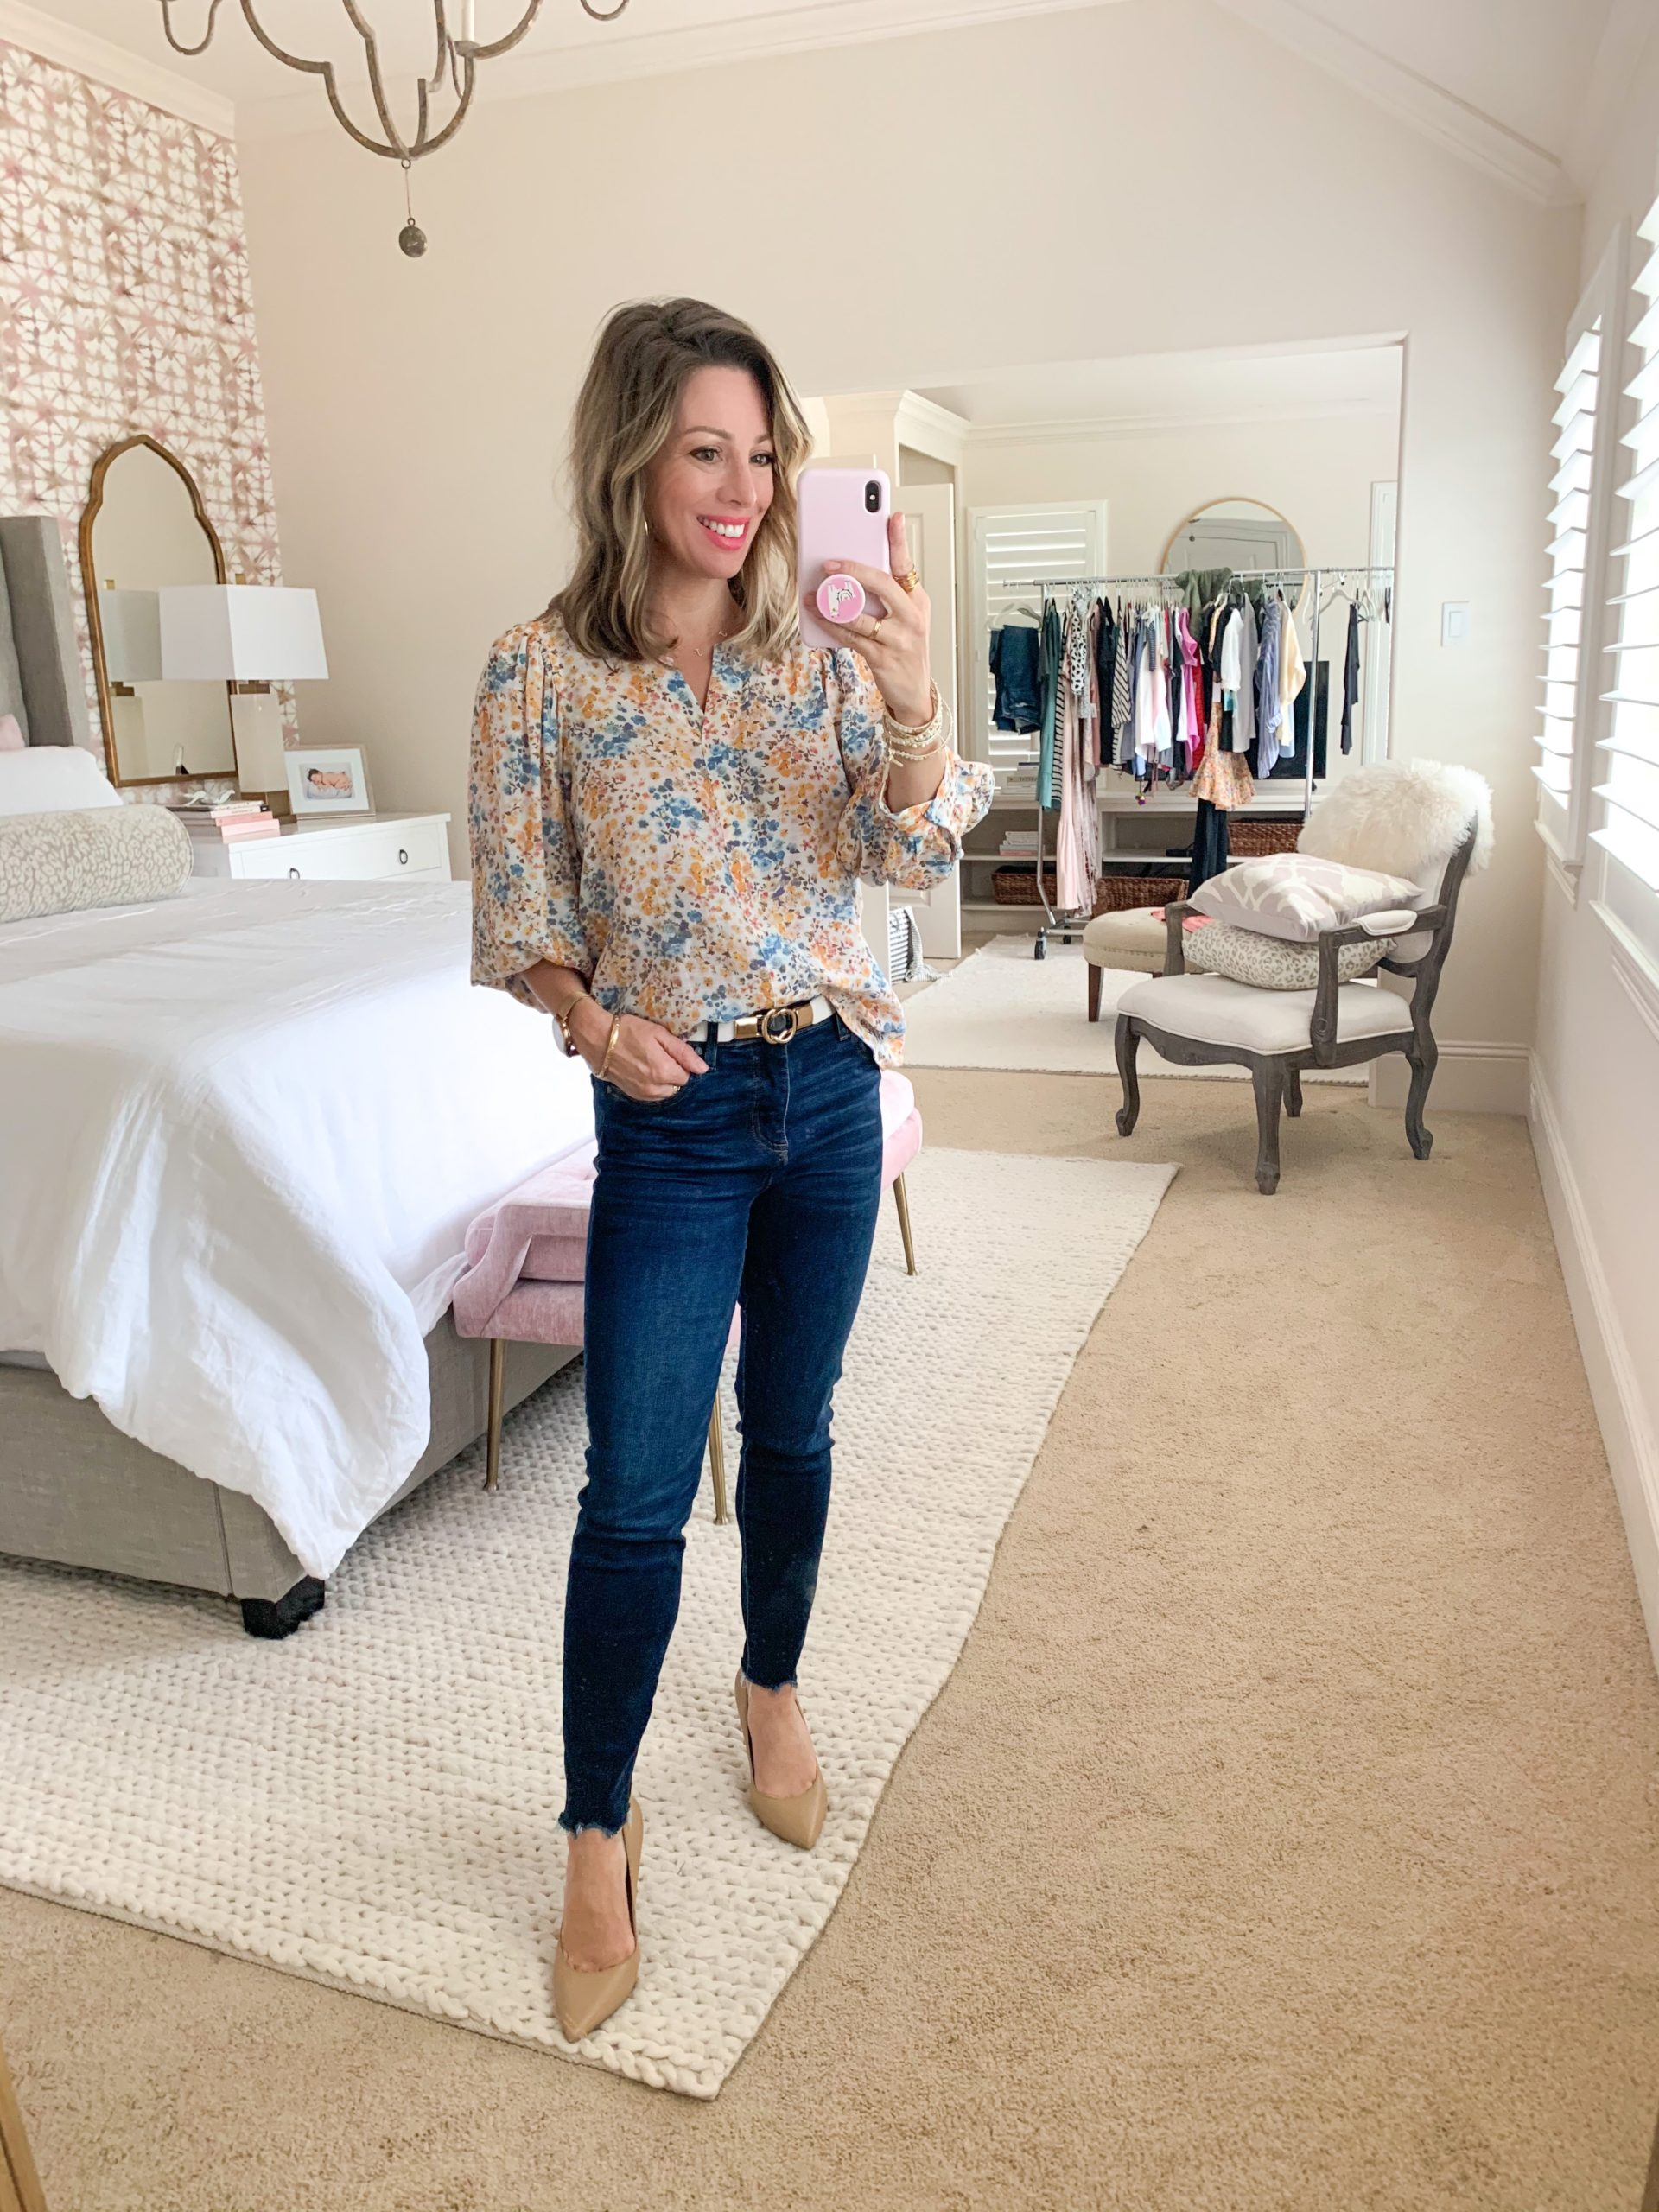 Spring Outfit, Nordstrom & JCP, Floral Top, Dark Denim Jeans, Heels, Gold/White Belt